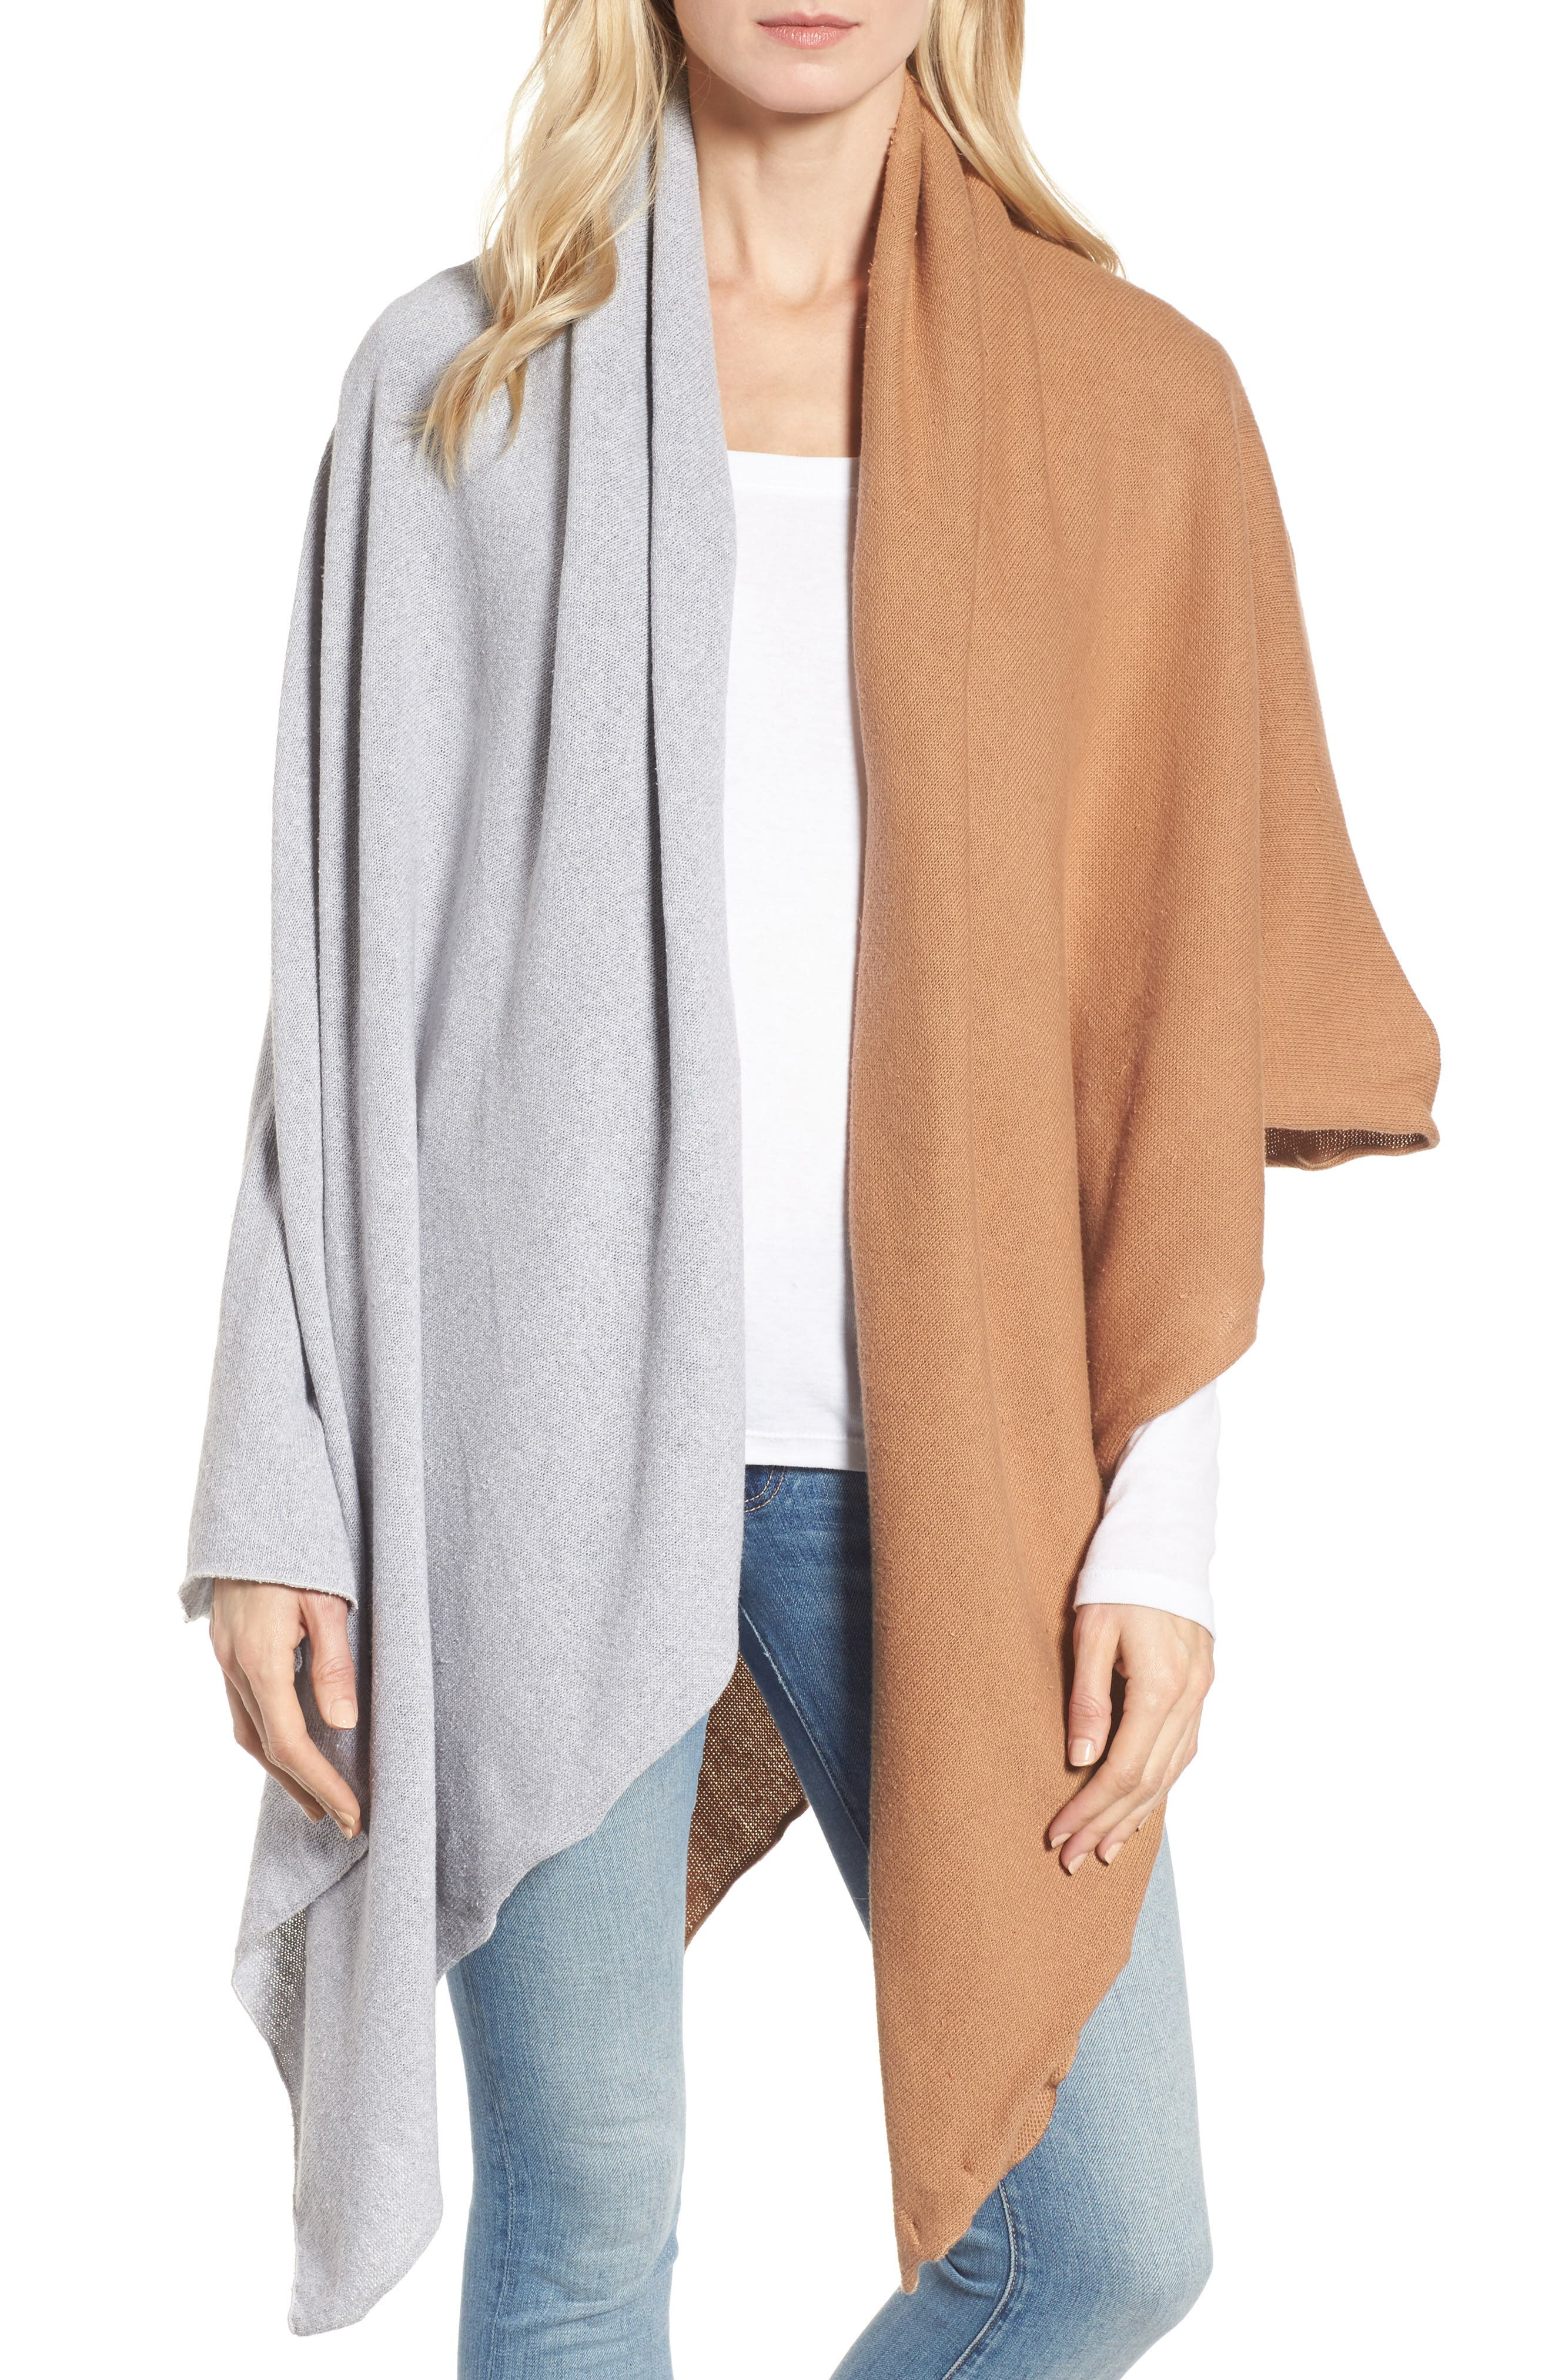 Alternate Image 1 Selected - Donni Charm Chilly Colorblock Blanket Scarf